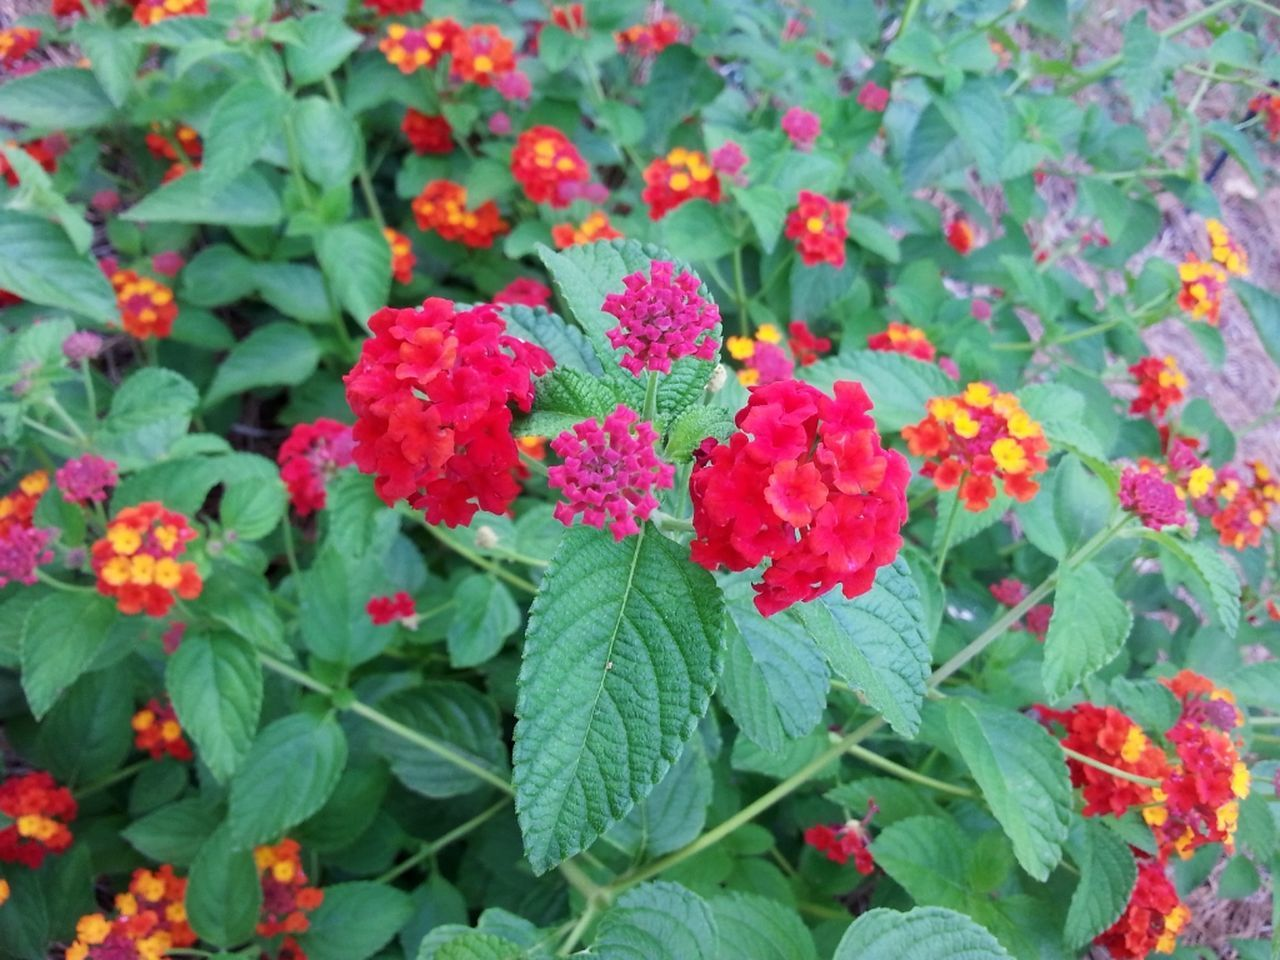 growth, flower, leaf, plant, beauty in nature, green color, nature, fragility, freshness, outdoors, blooming, petal, day, no people, flower head, park - man made space, lantana camara, close-up